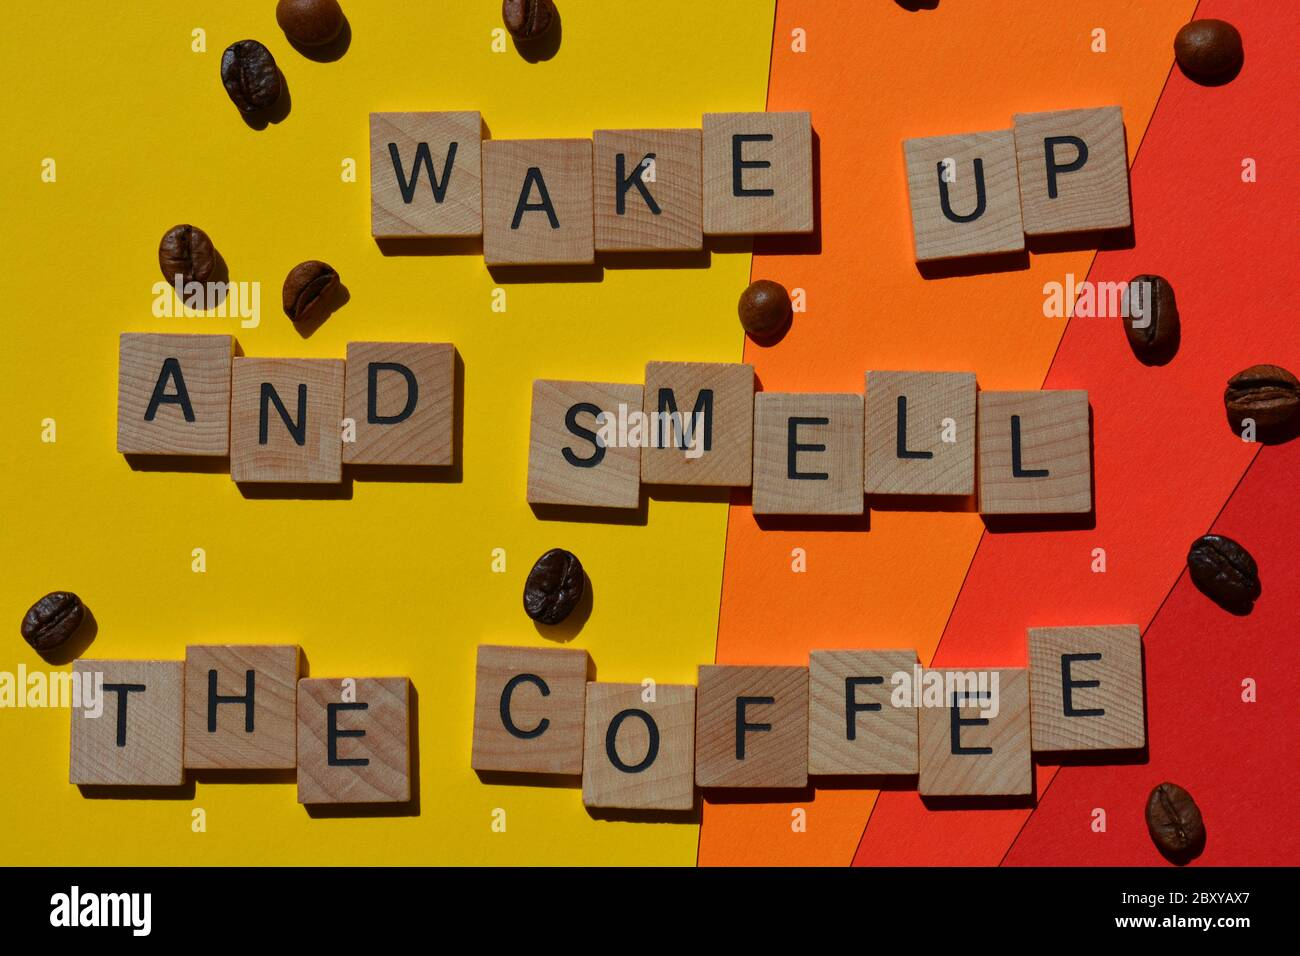 Wake Up And Smell The Coffee, words in 3d wooden alphabet letters with coffee beans isolated on brightly colour background Stock Photo